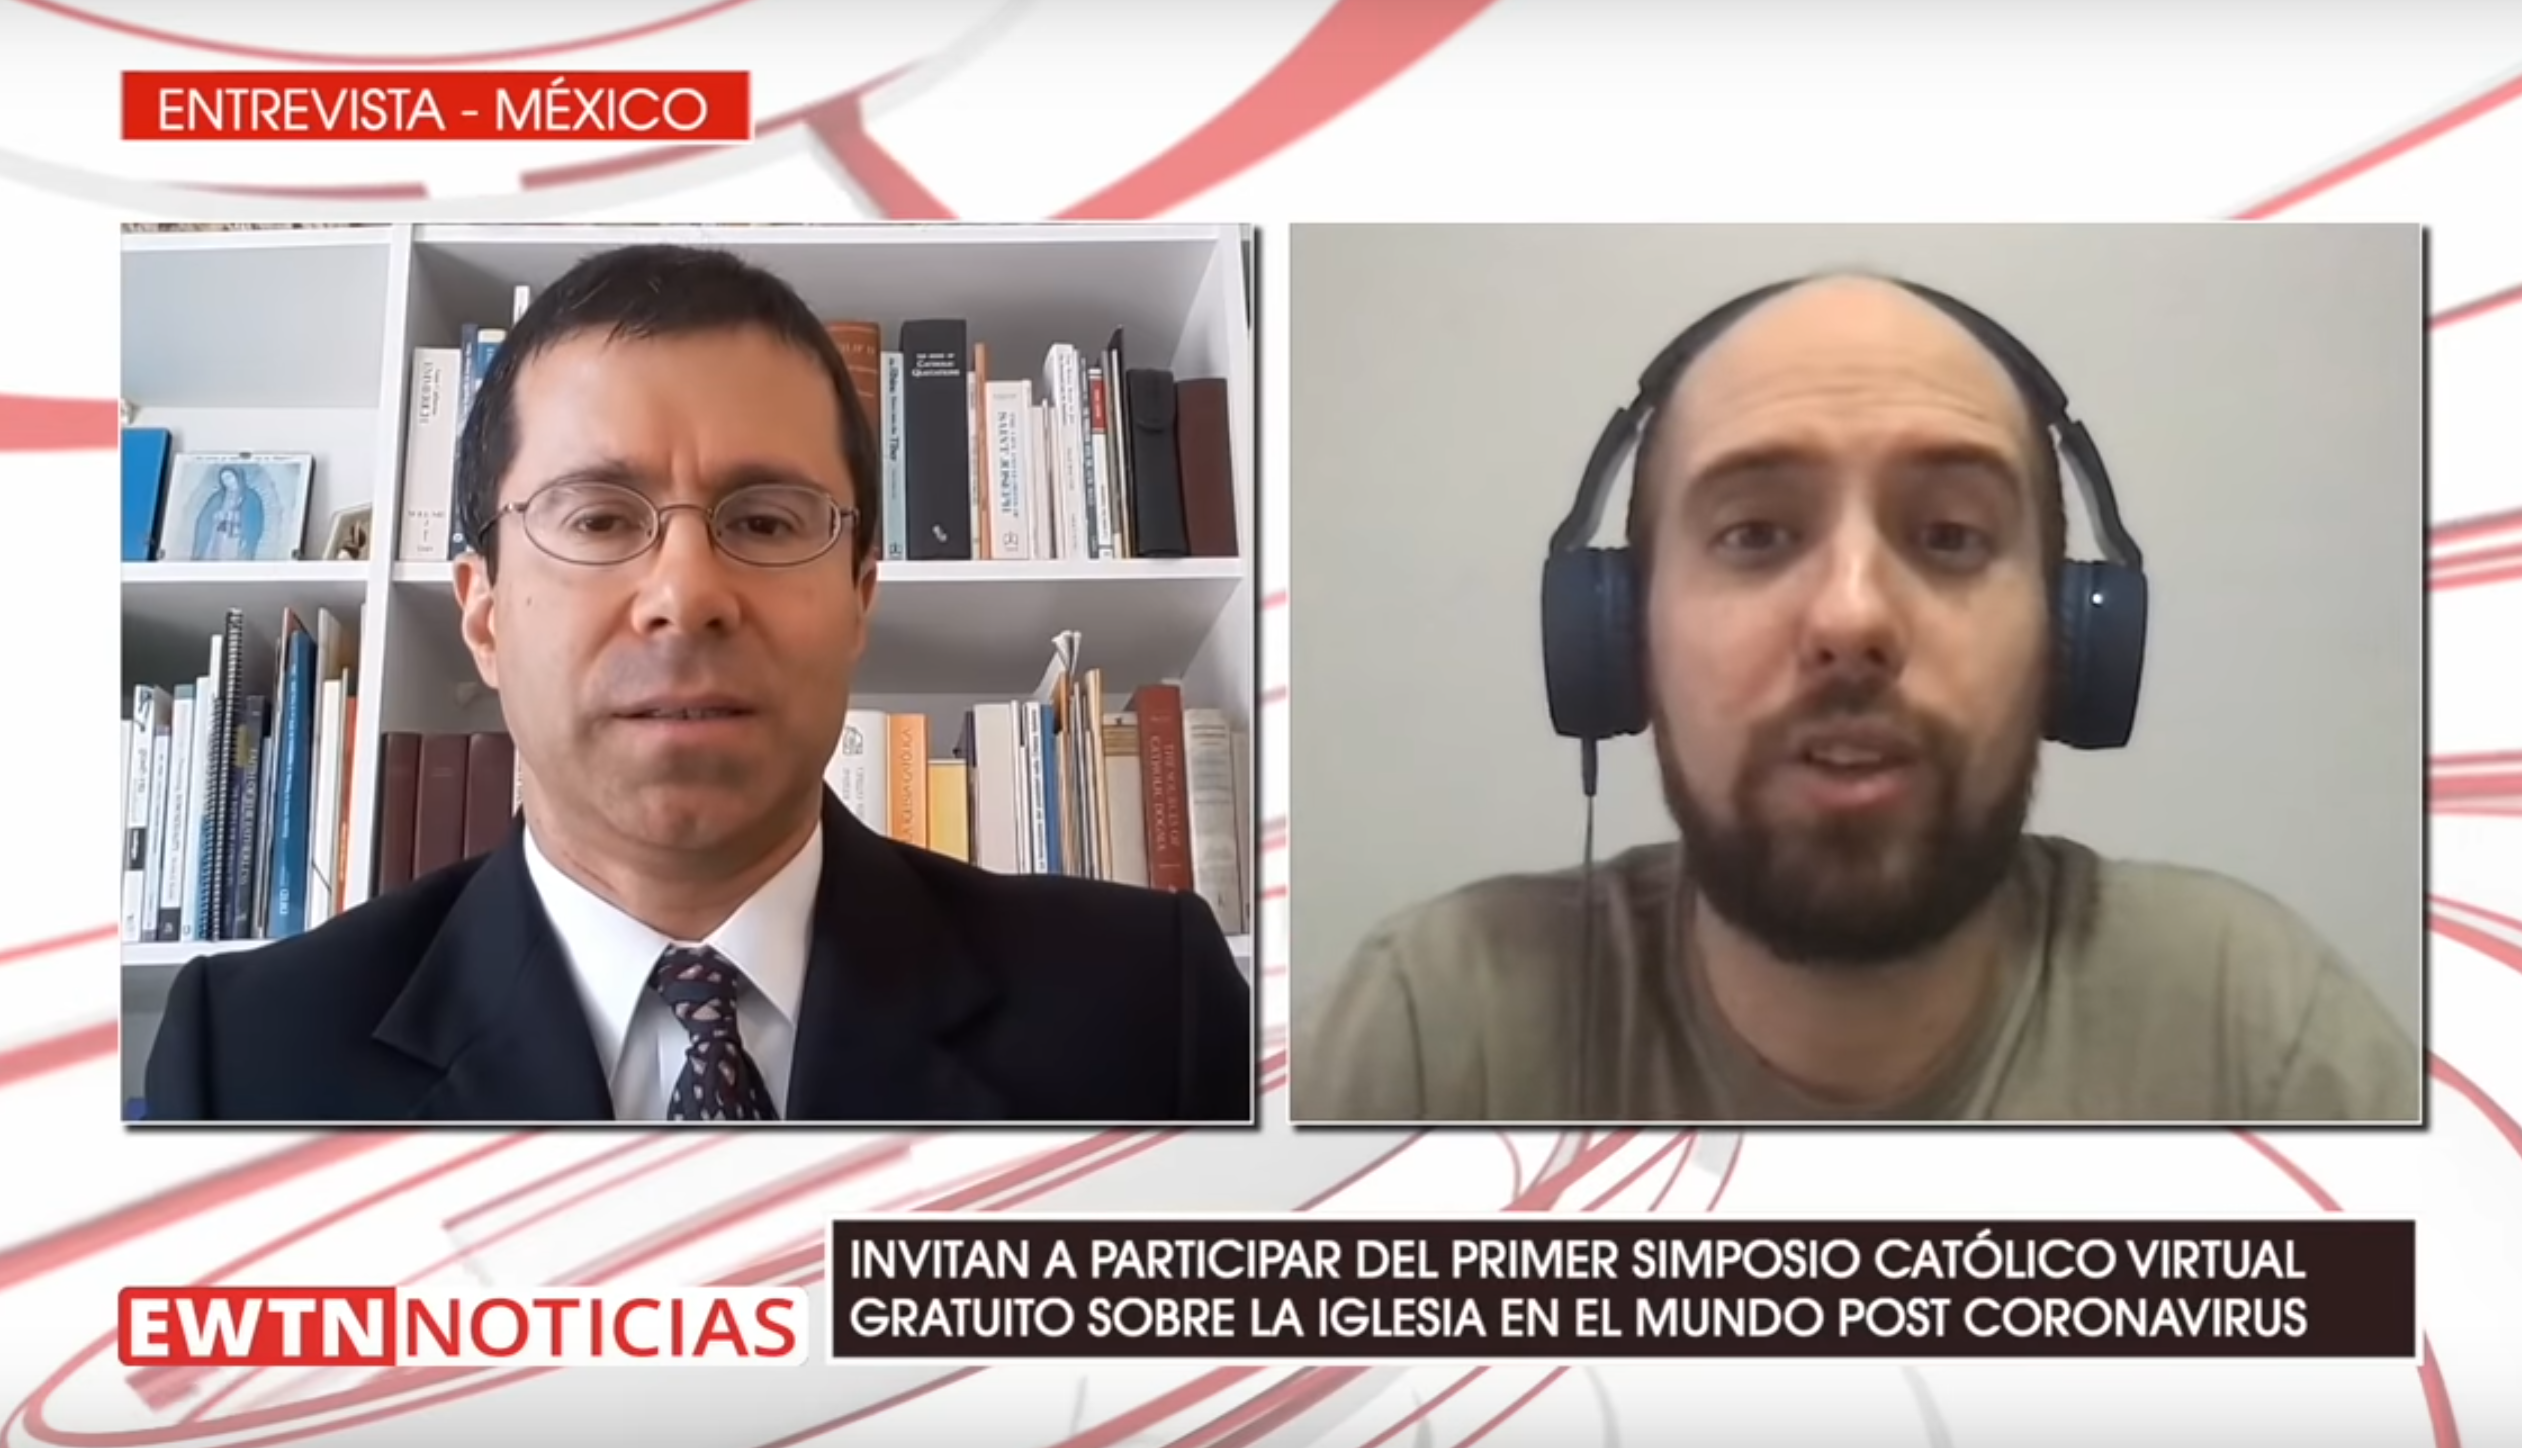 SImposio Católico Virtual in EWTN Noticias